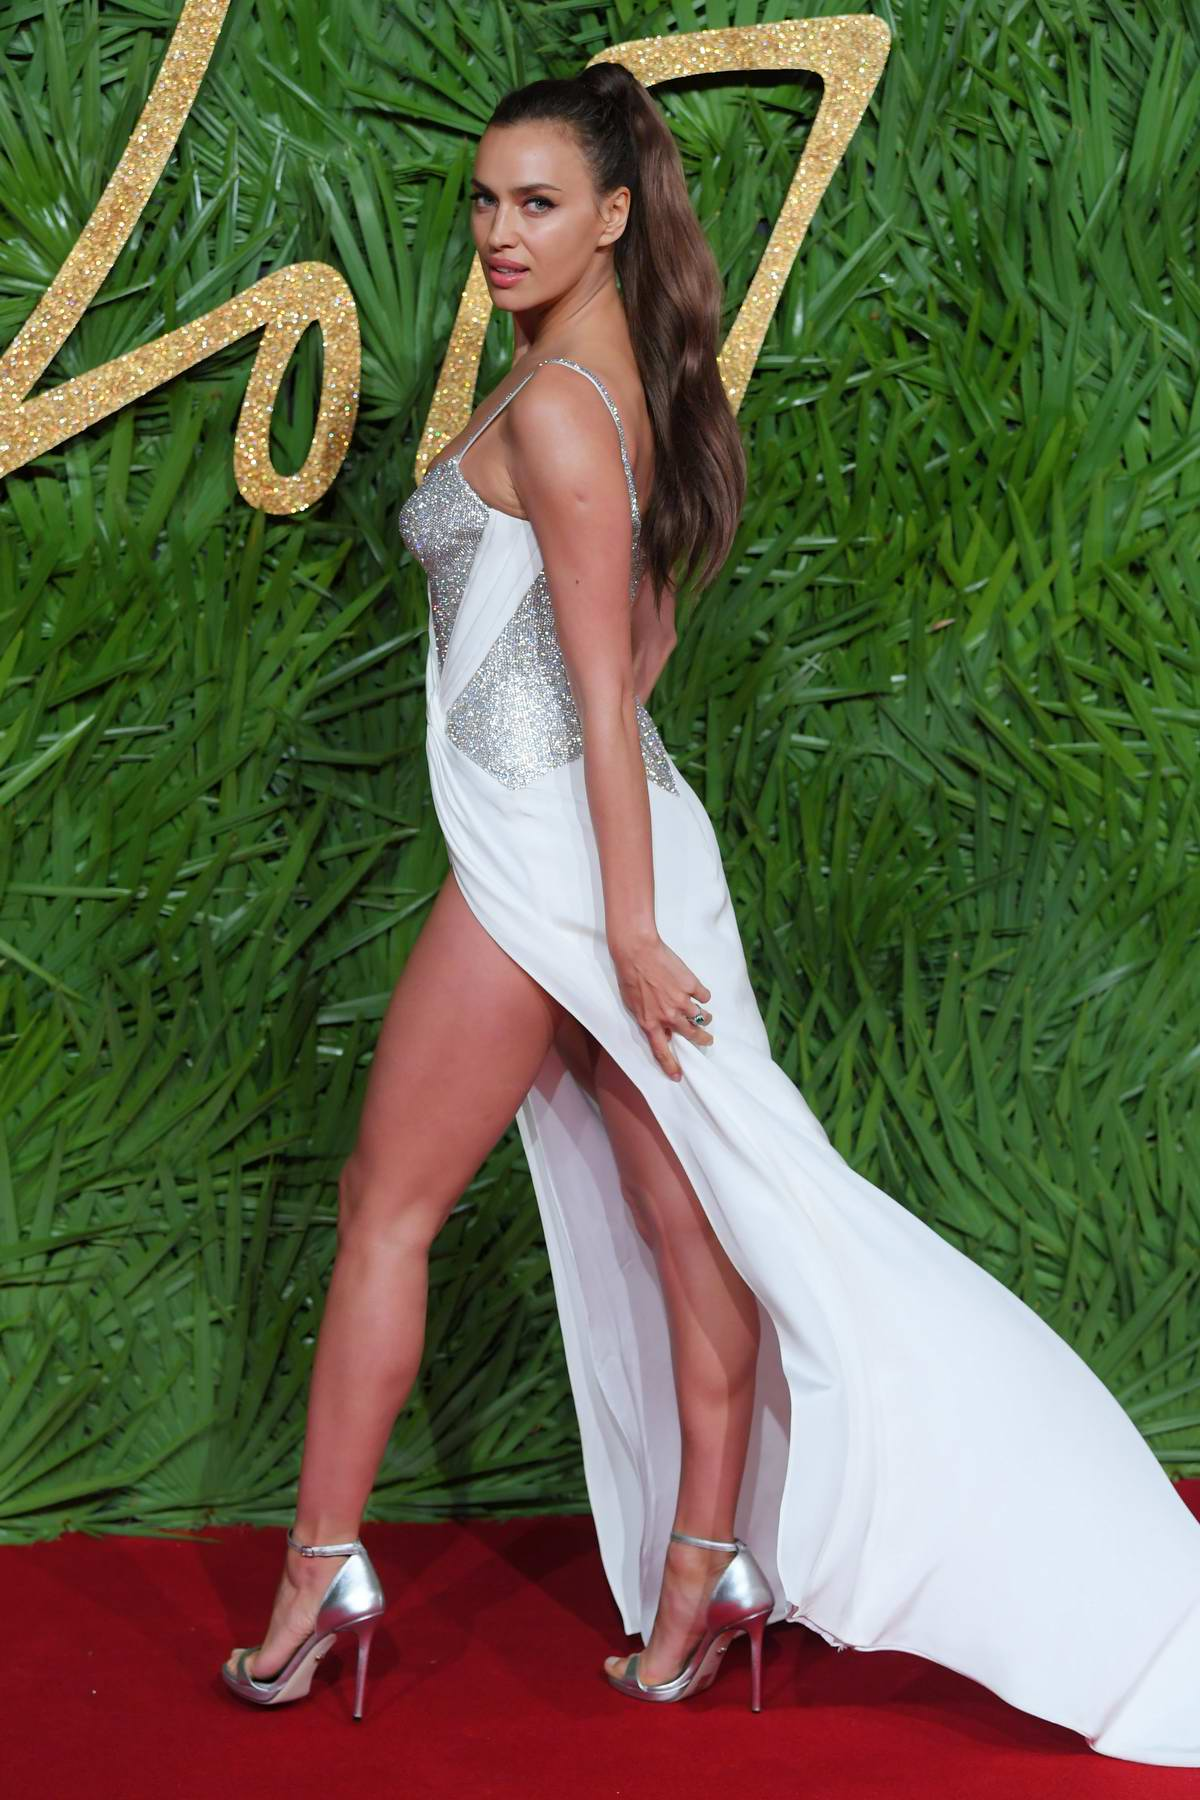 Irina Shayk attends The British Fashion Awards 2017 in partnership with Swarovski held at the Royal Albert Hall in London